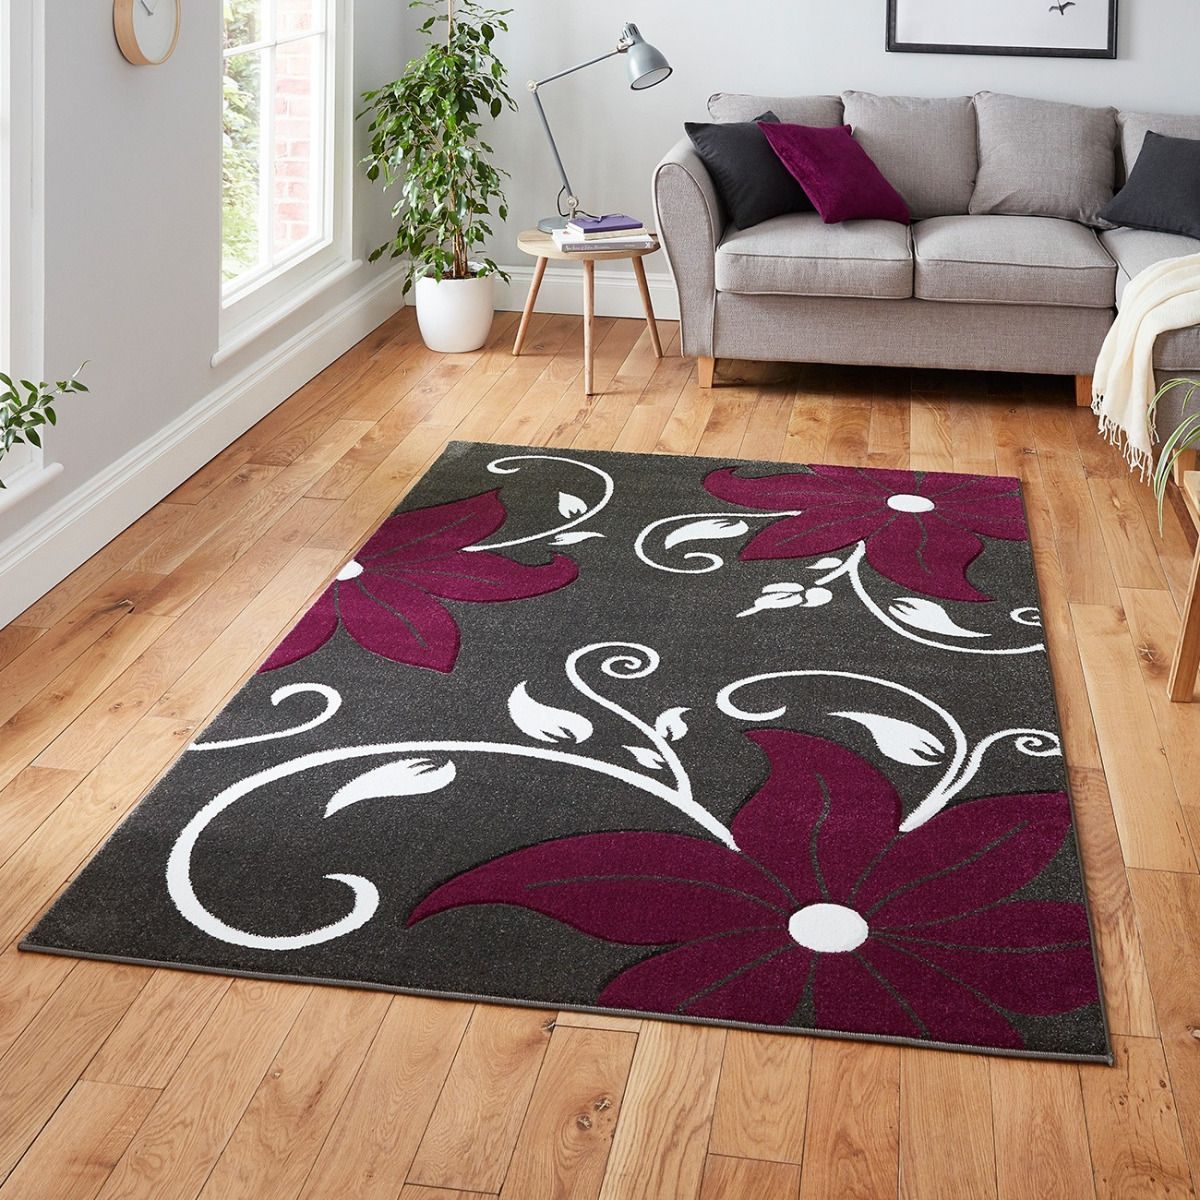 Oc15 Grey Purple Floral Rug By Think Rugs Therugshopuk